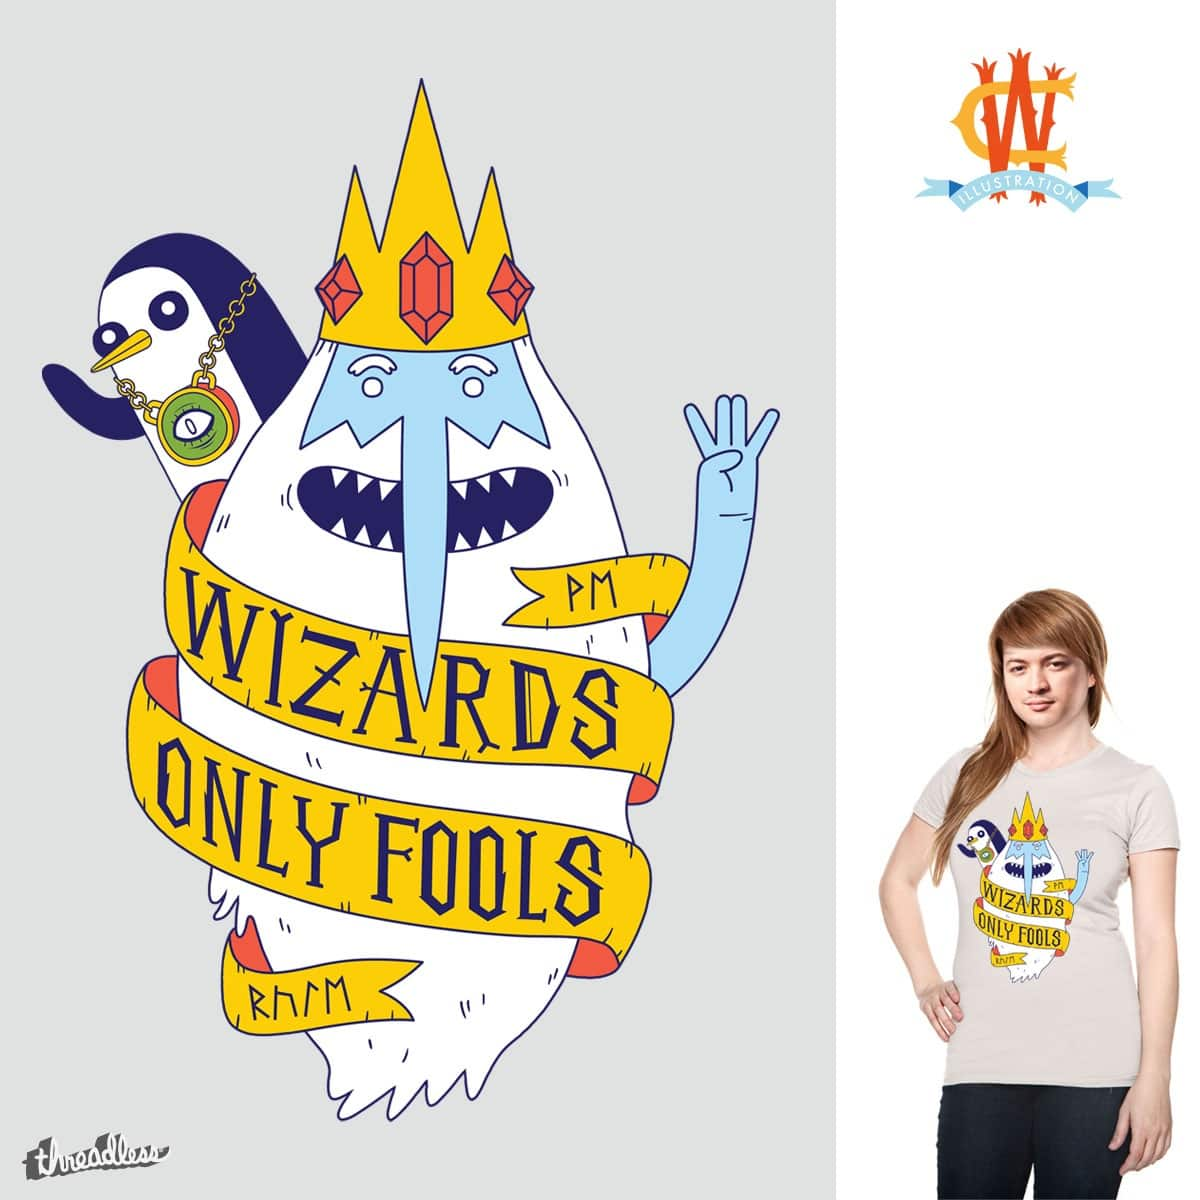 Wizards Only Fools by Wharton on Threadless